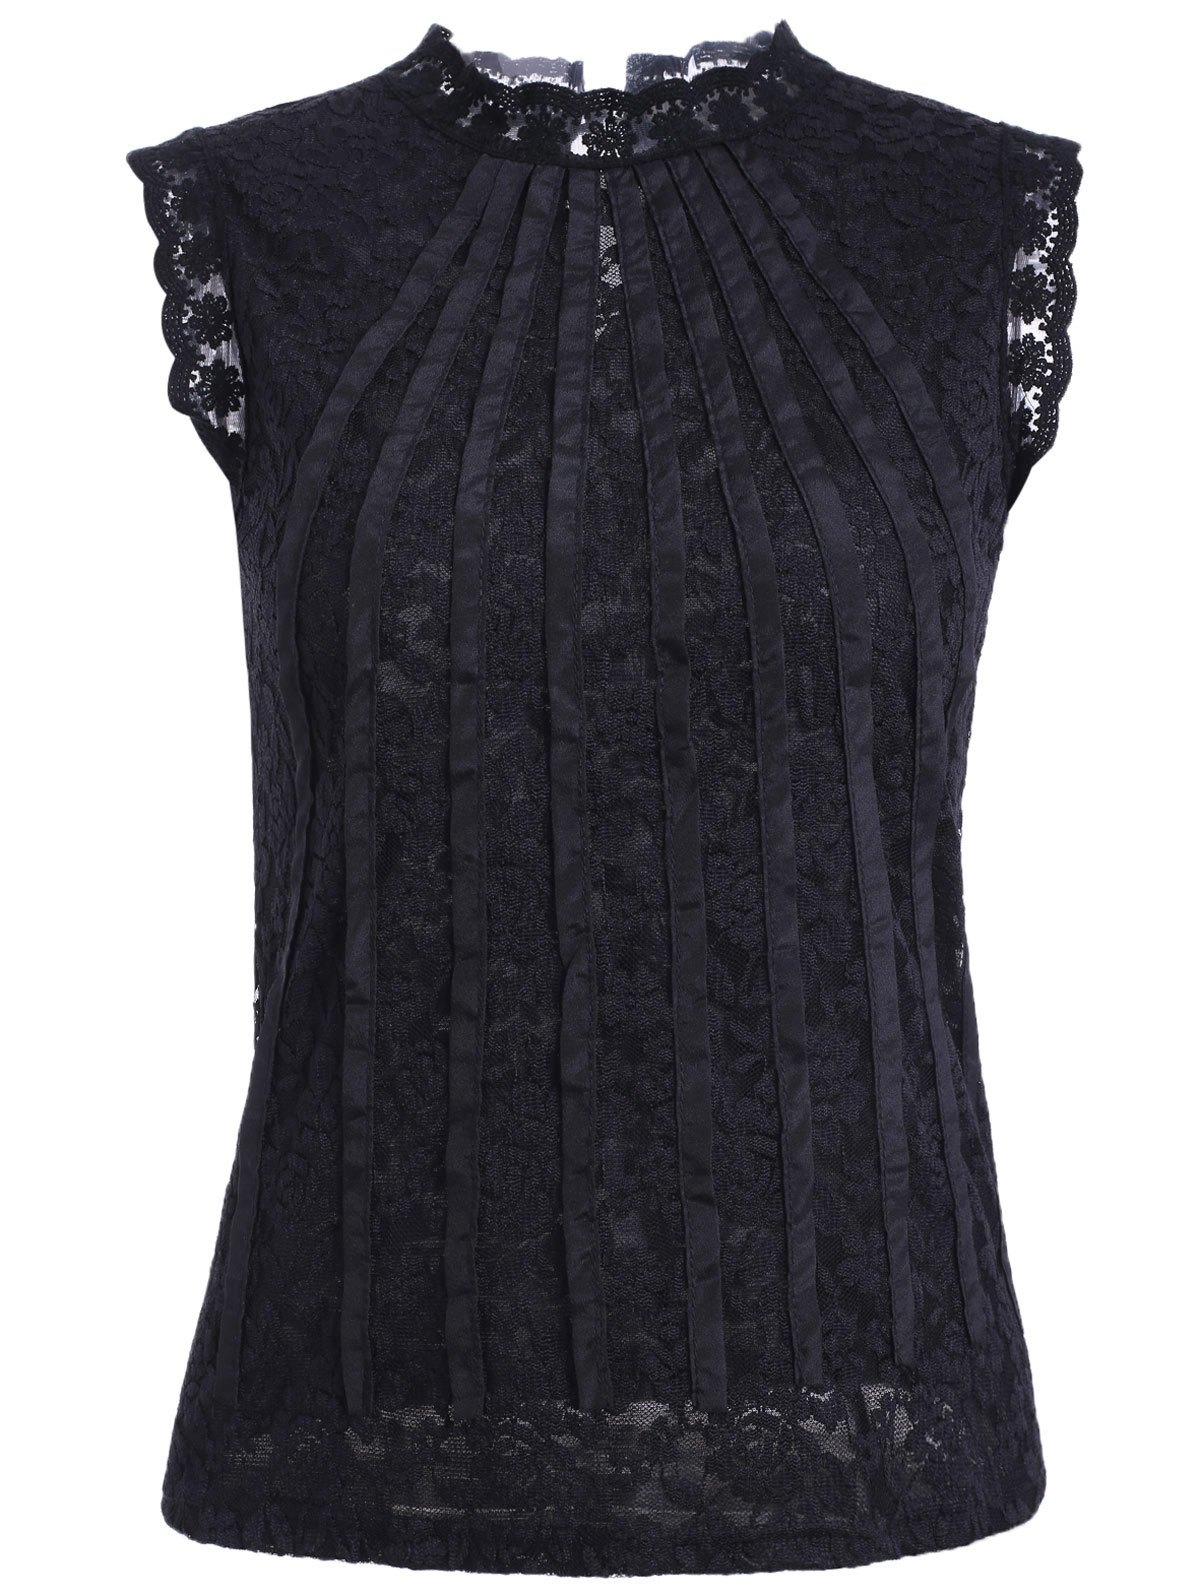 Stand Collar Sleeveless Guipure Laciness Top - BLACK ONE SIZE(FIT SIZE XS TO M)